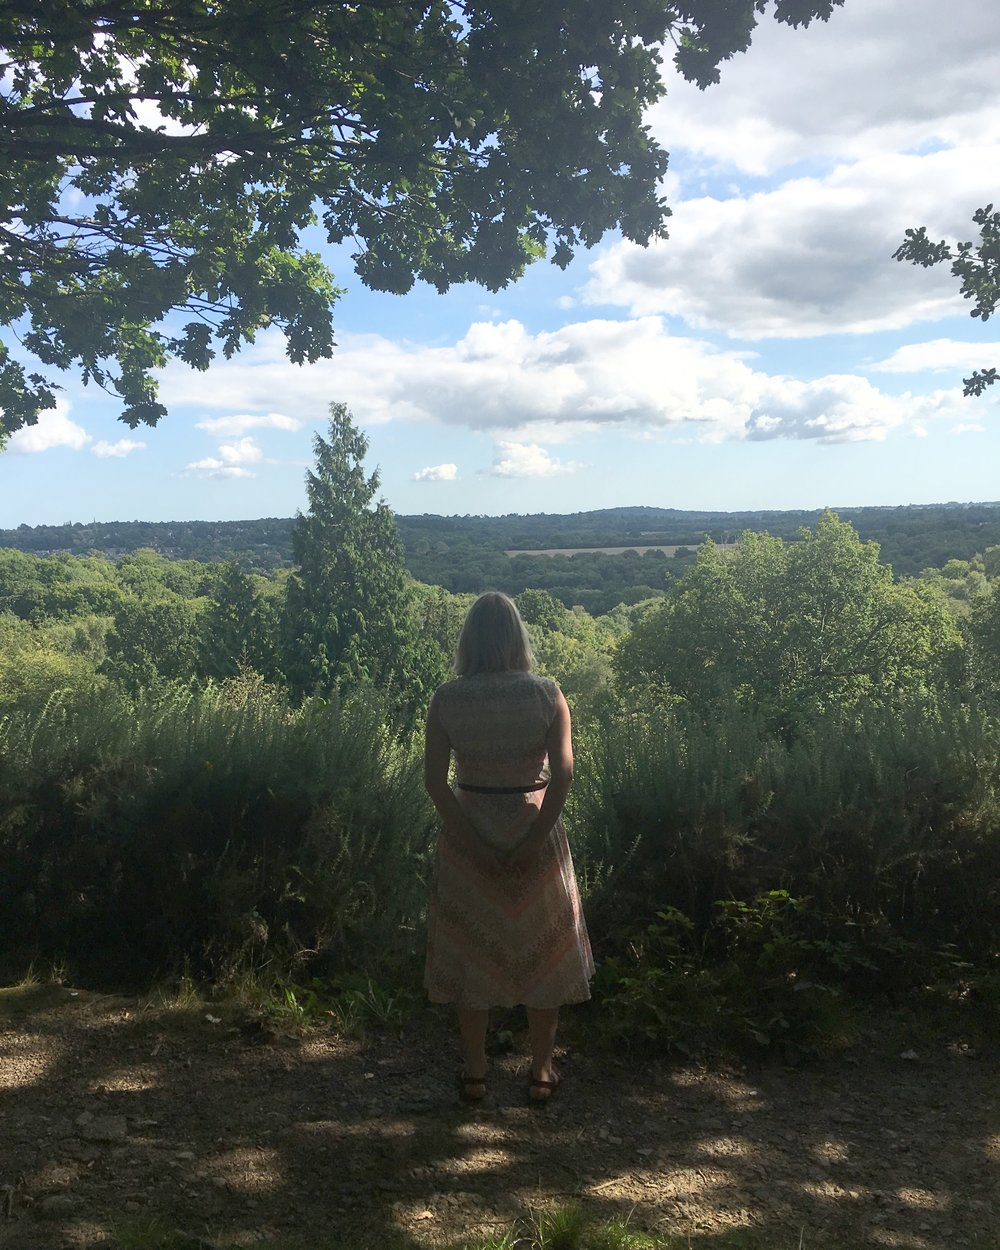 Me in my vintage dress, looking out over the Kent countryside, contemplating life and taking some quiet time. So good for the soul!